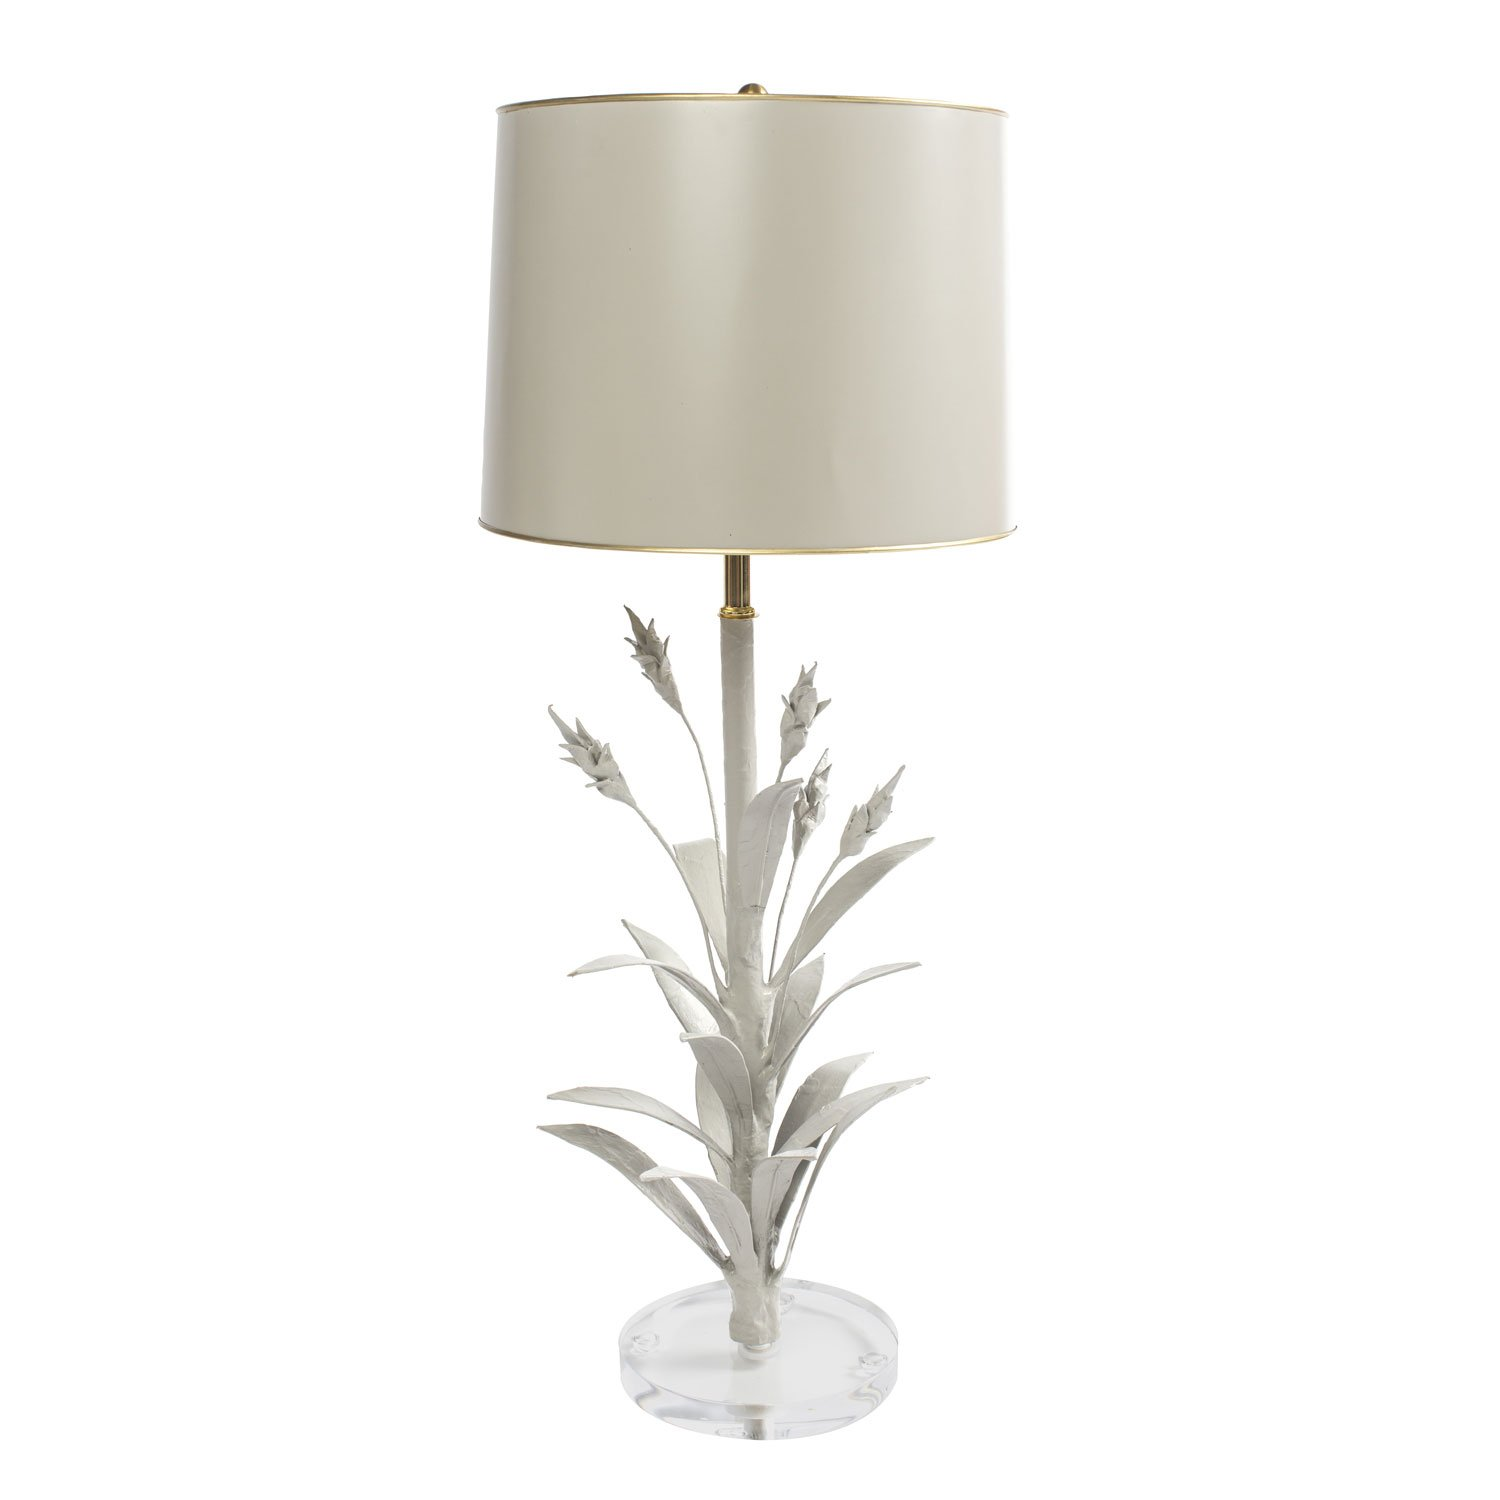 Wheat Table Lamp In 2020 Grey Table Lamps Table Lamp Lamp